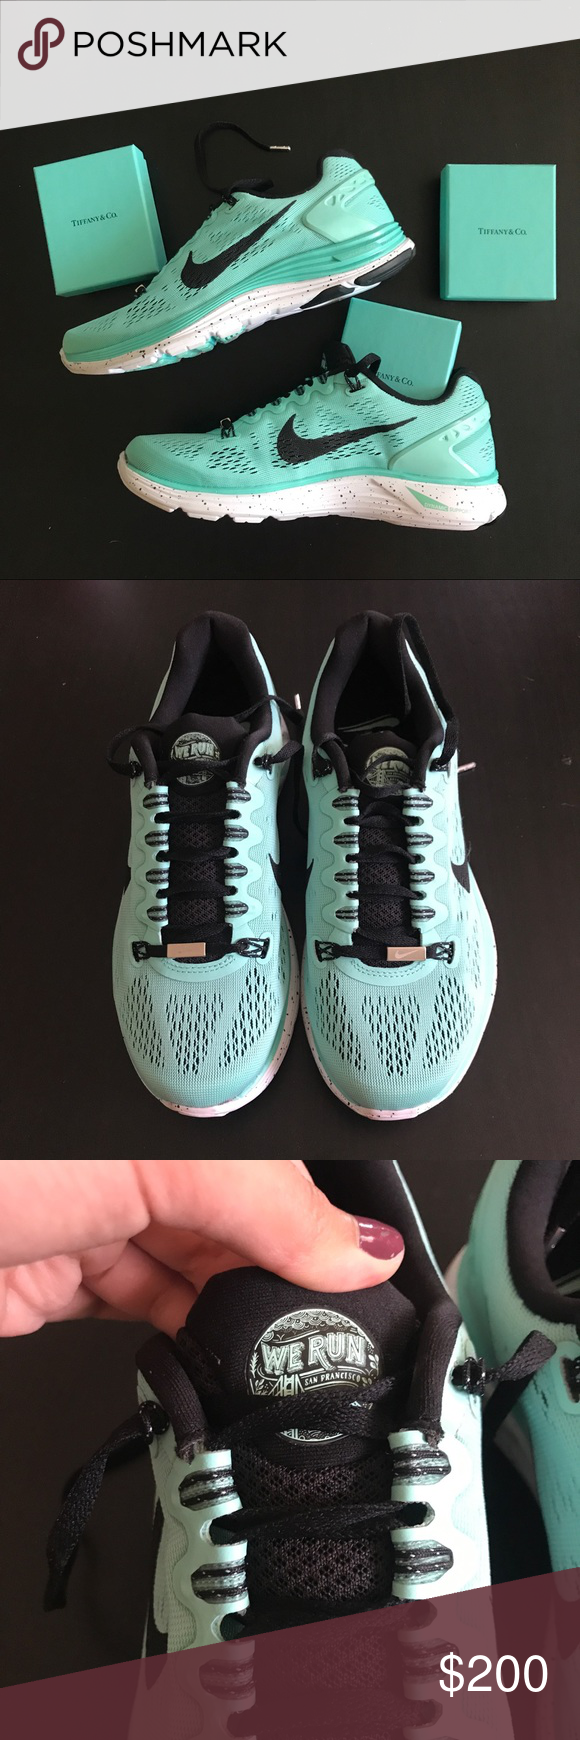 98549ab122d0 🌟Rare NWT Nike NWM Lunarglide 5 Tiffany Blue ✨RARE brand new Nike  Lunarglide 5 from the 2013 Nike Women s Marathon. These shoes were sold for  1 day only ...